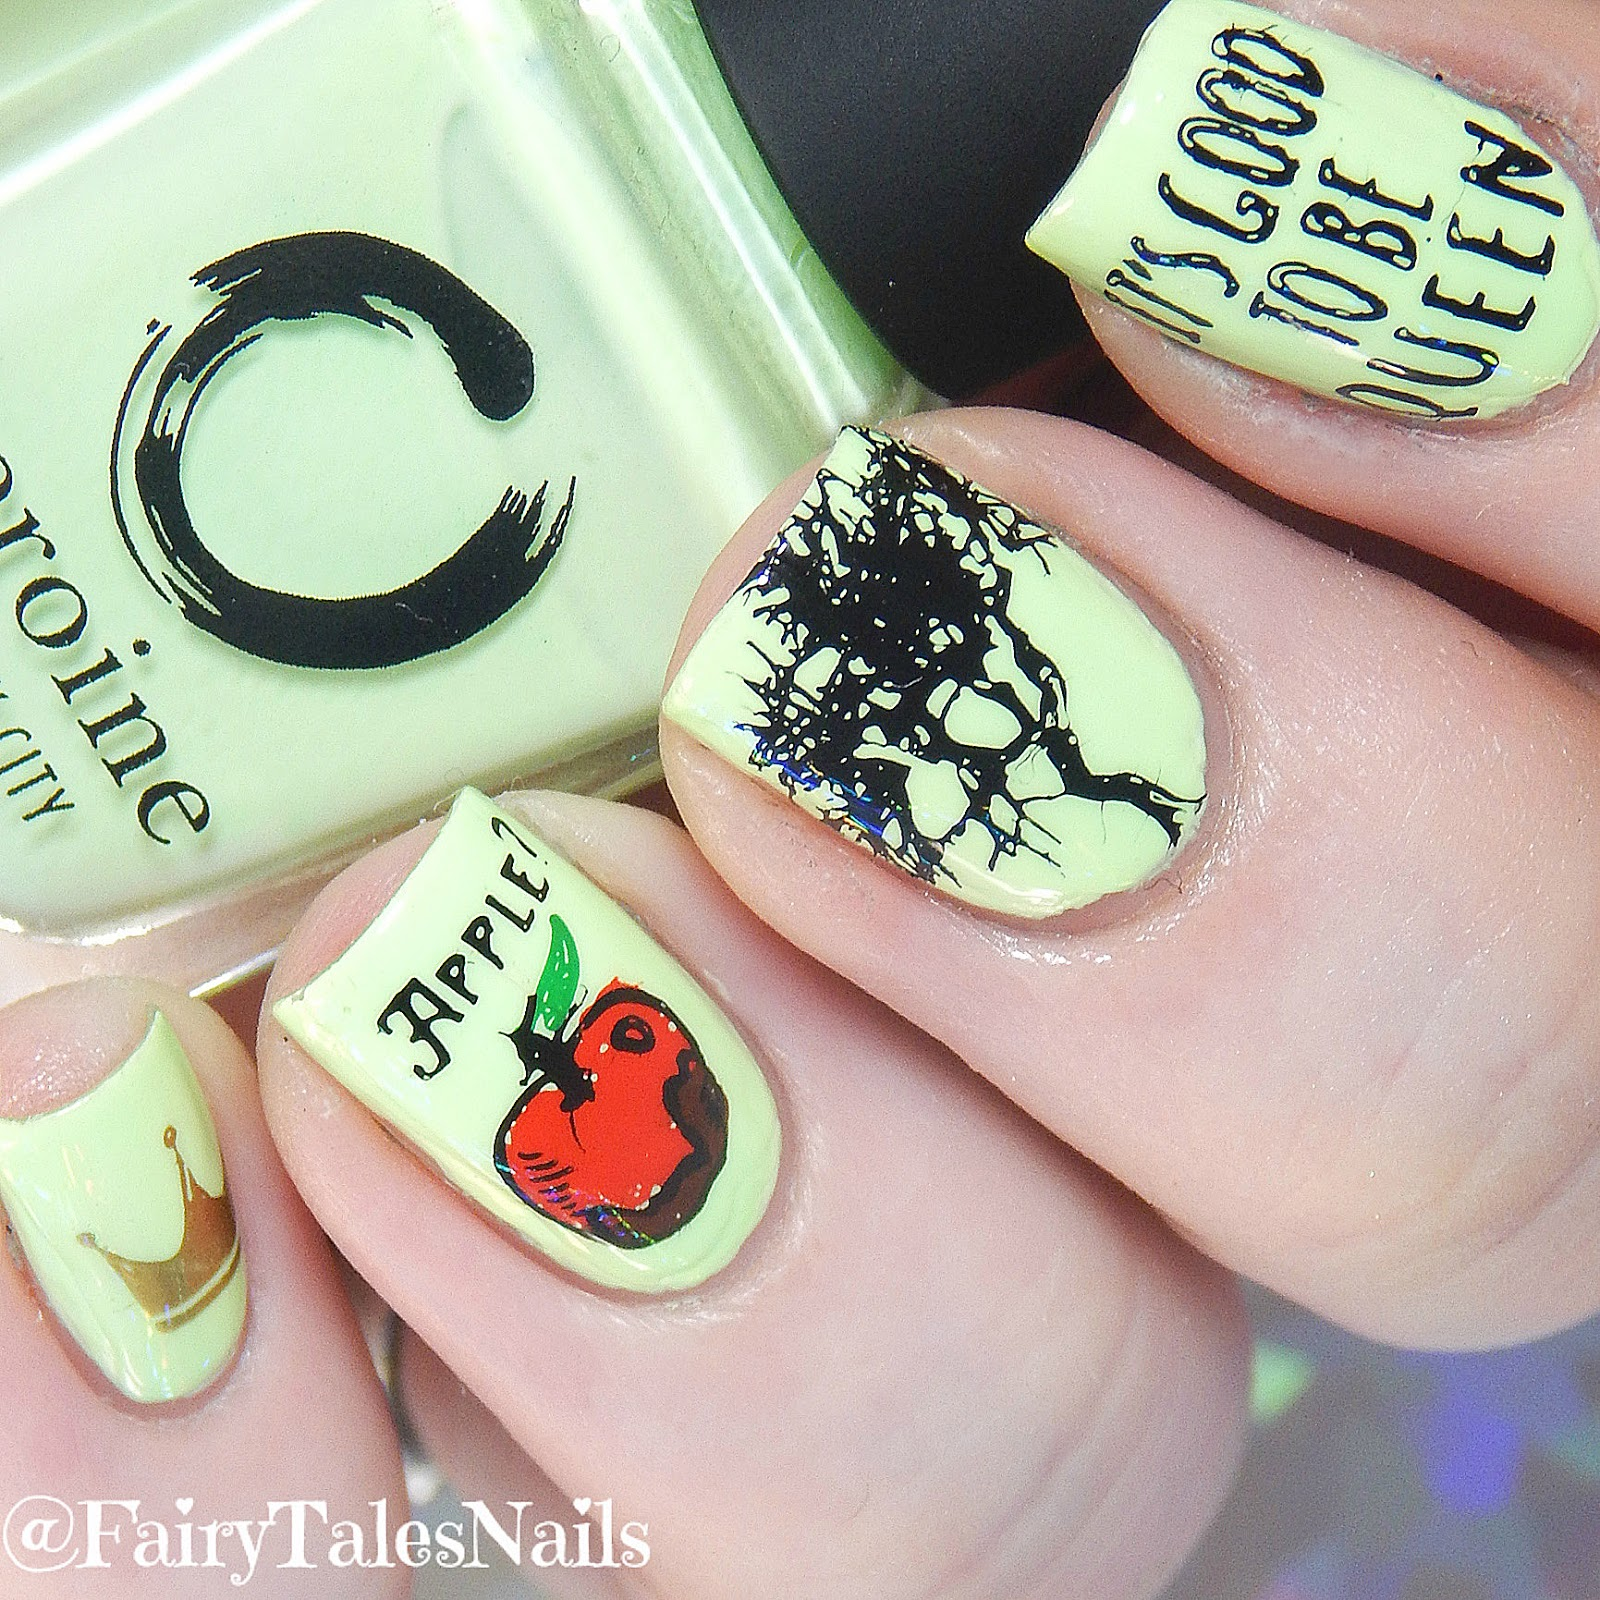 FairyTales Nails: July 2017 Nail Art Round-Up